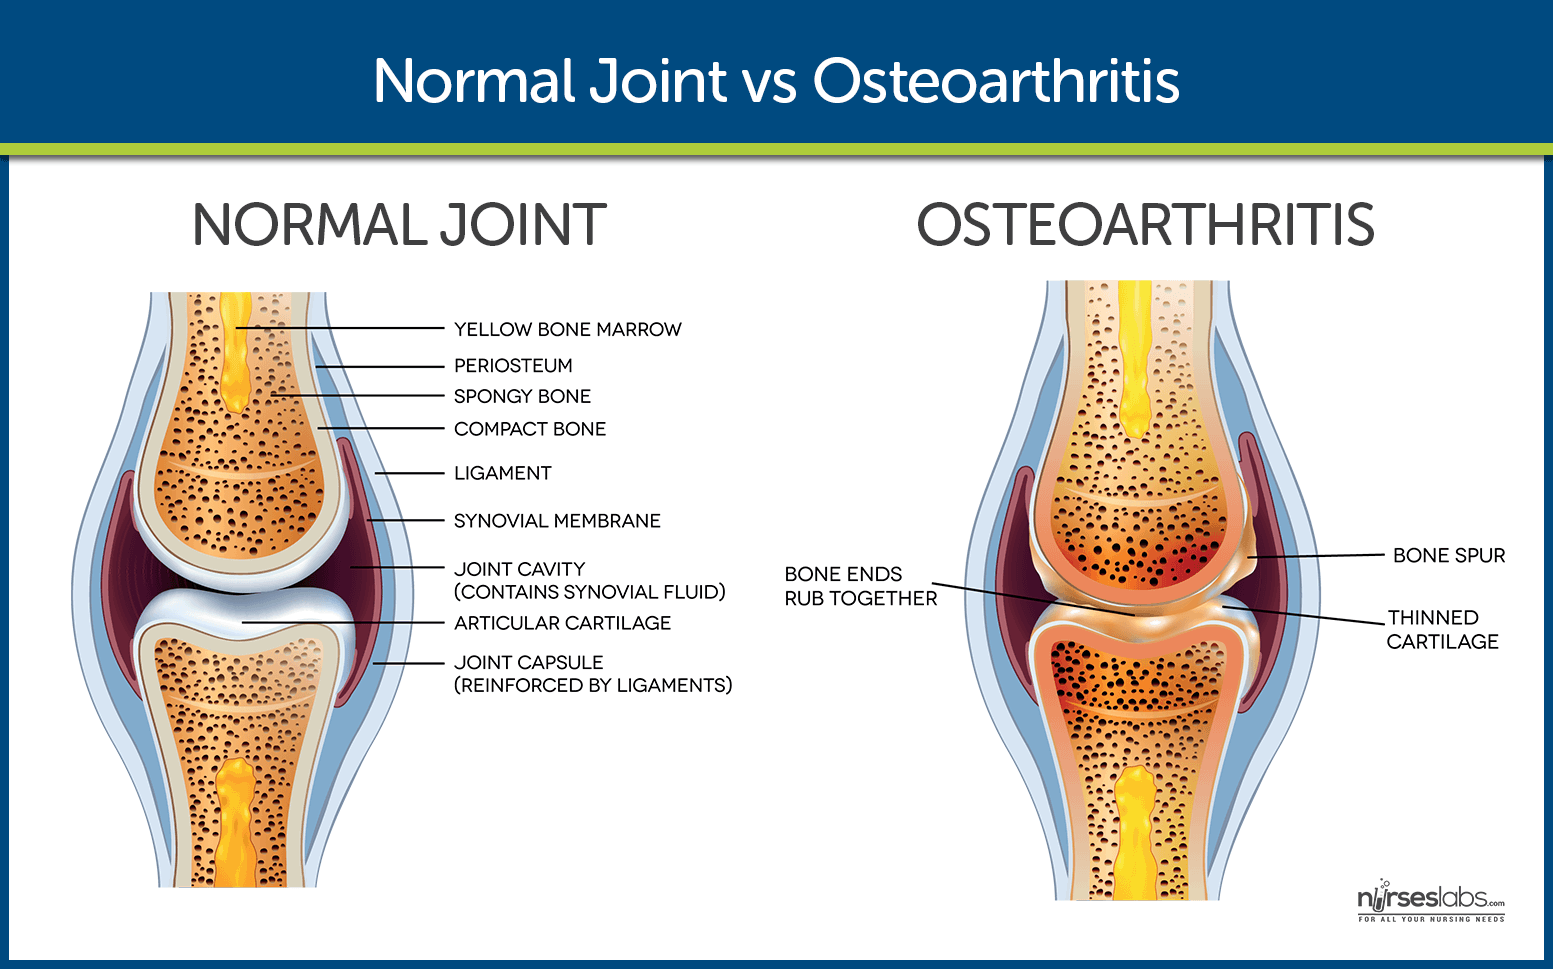 Normal Joint vs Osteoarthritic Joint